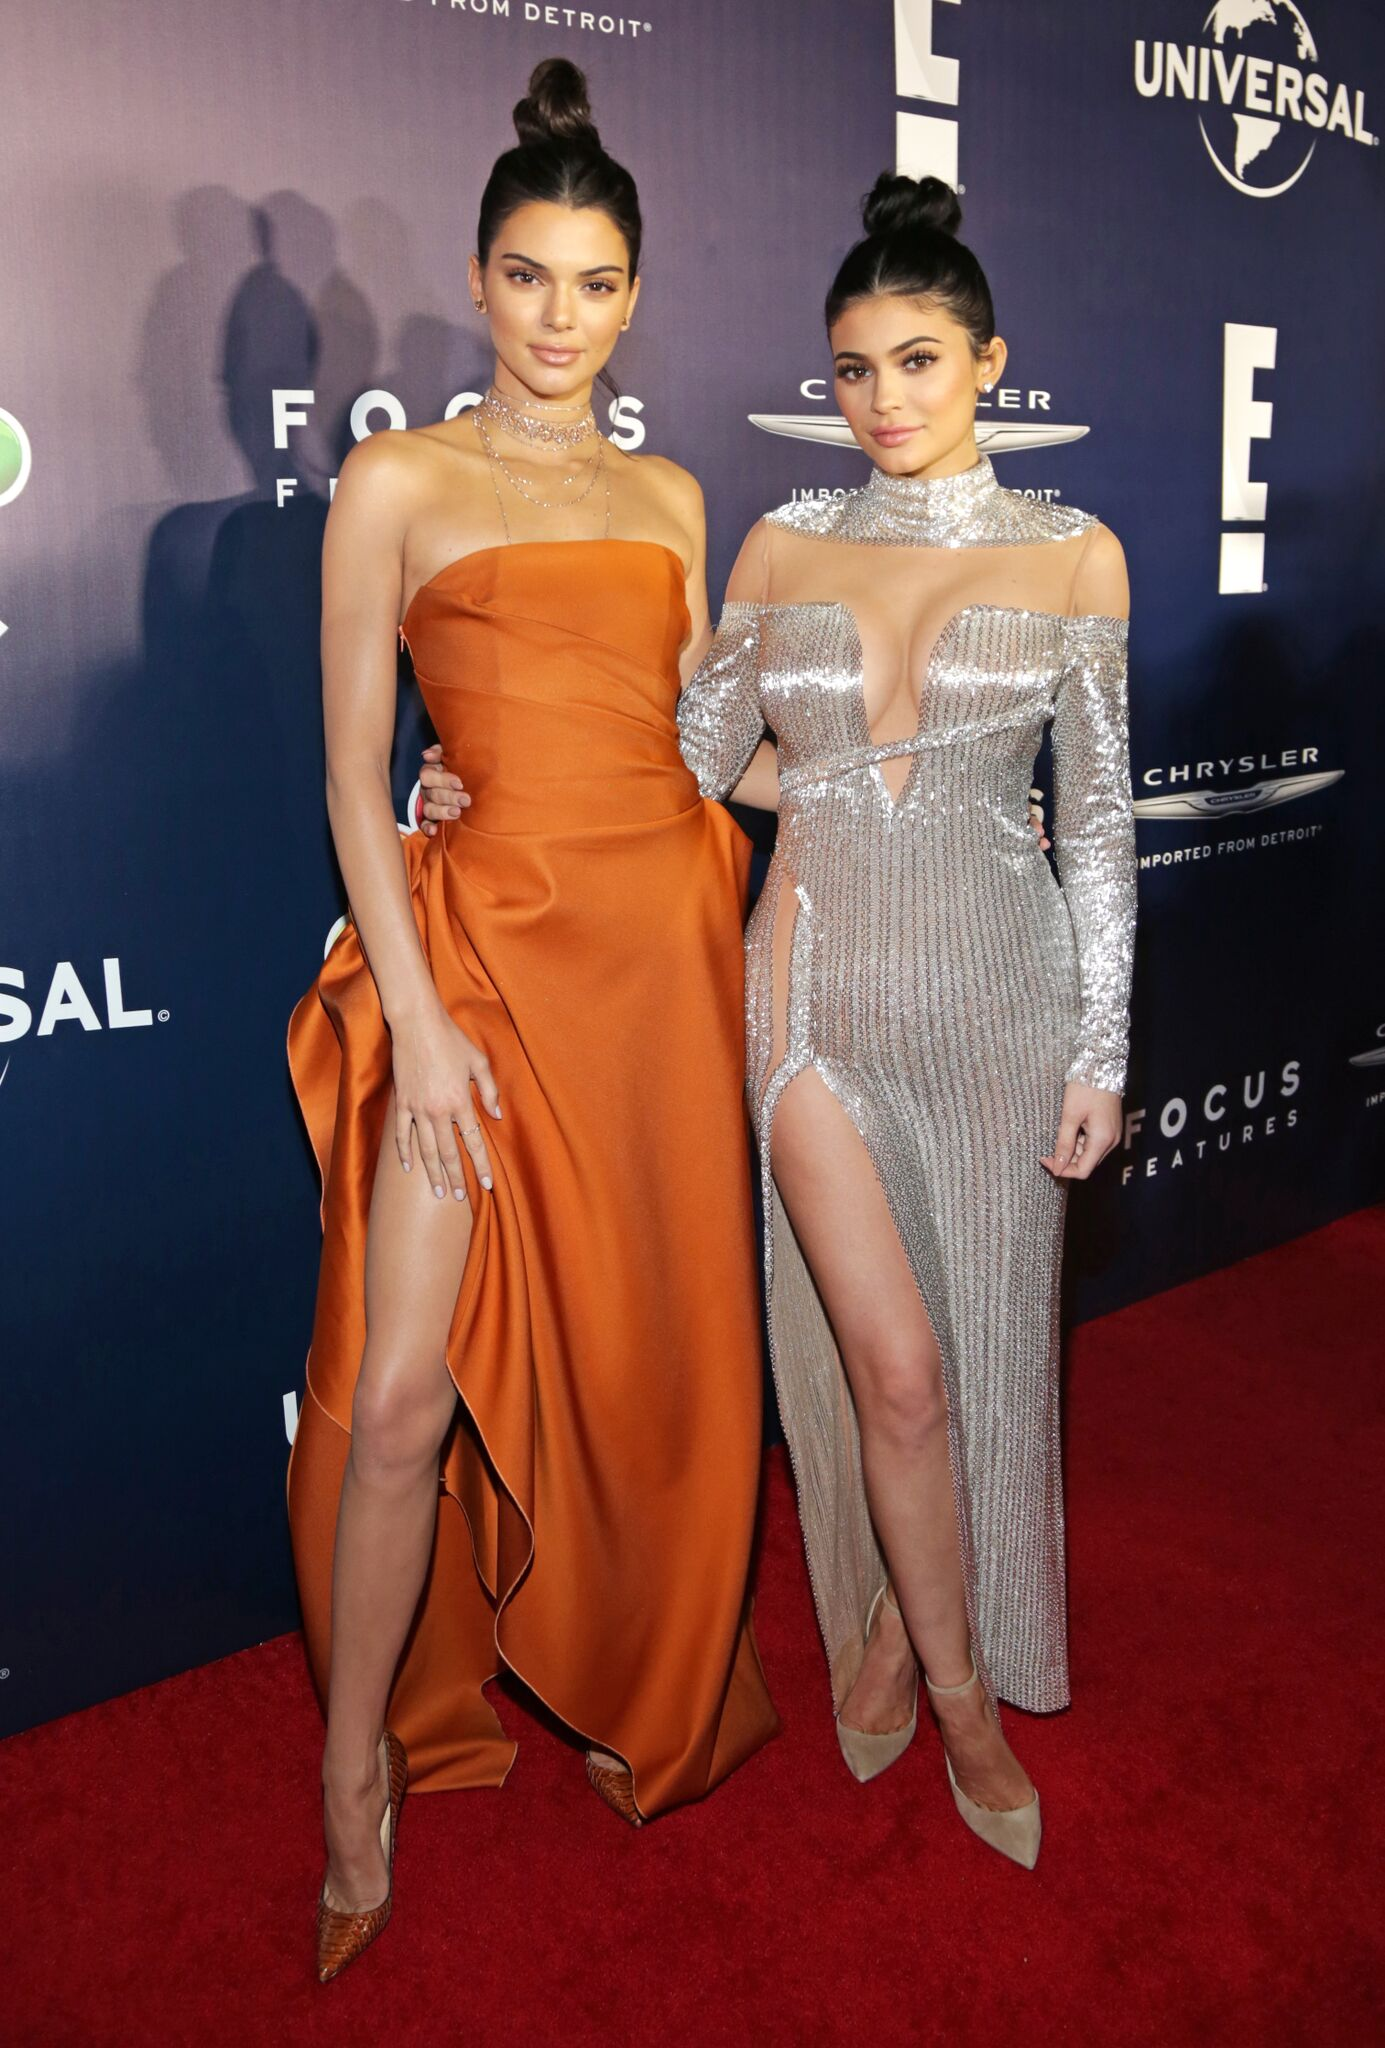 Kendall Jenner and Kylie Jenner attend NBCUniversal's 74th Annual Golden Globes After Party | Getty Images